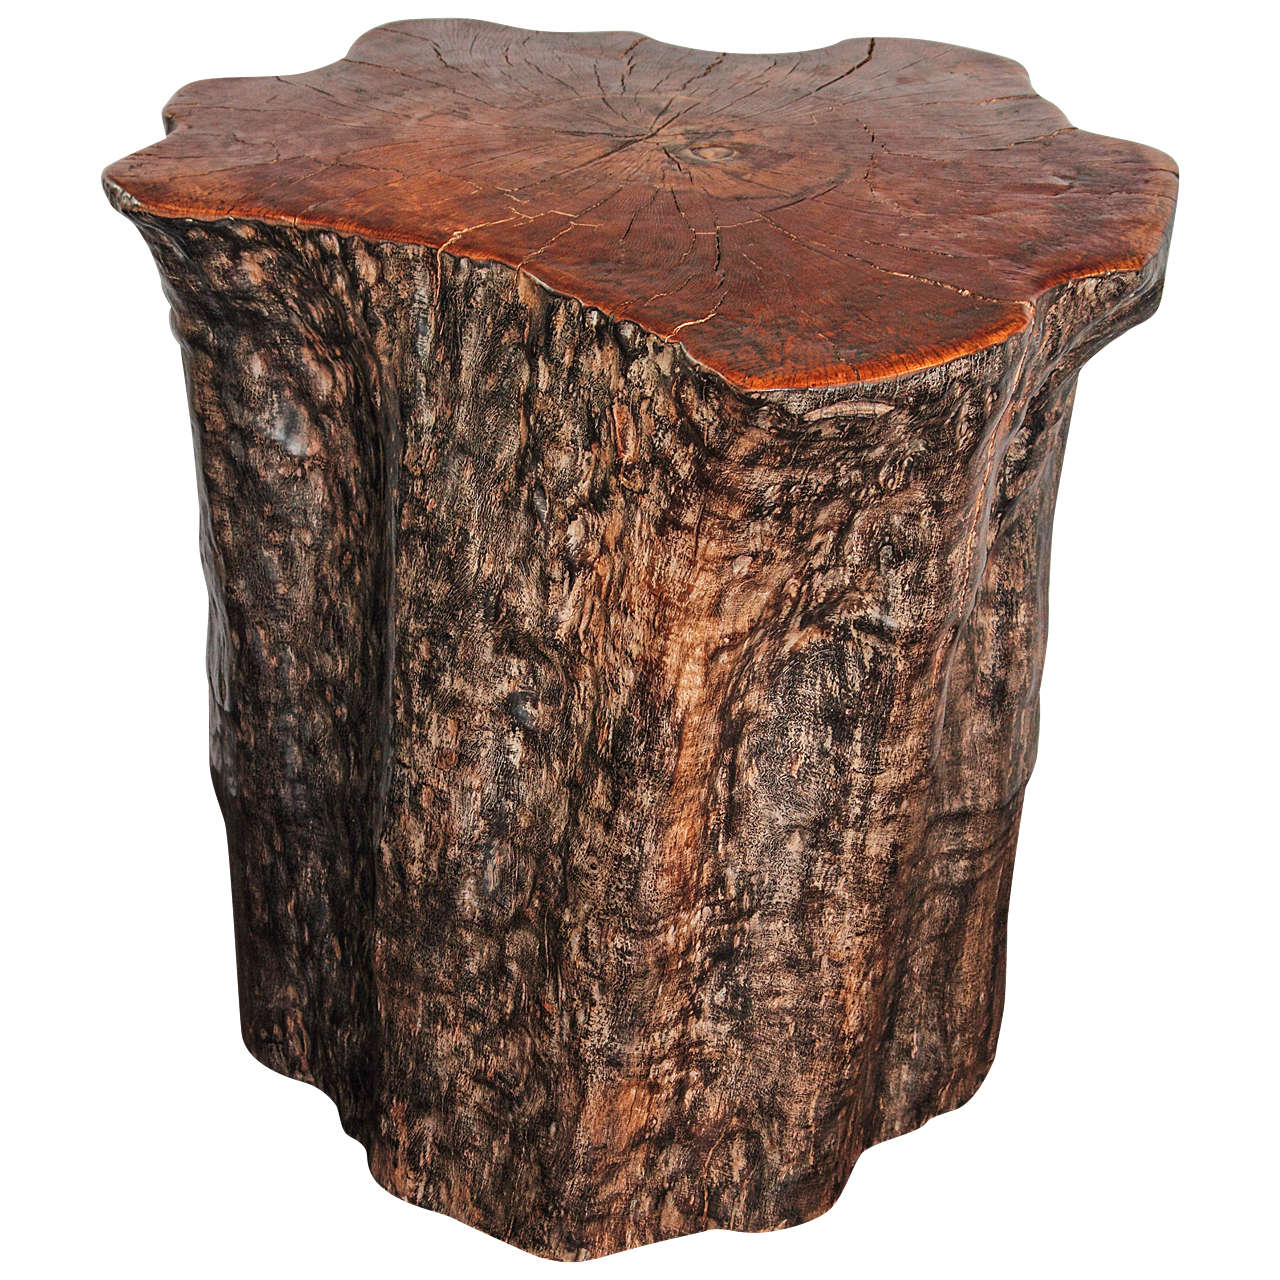 Organic Form Lychee Tree Trunk Pedestal Or End Table At